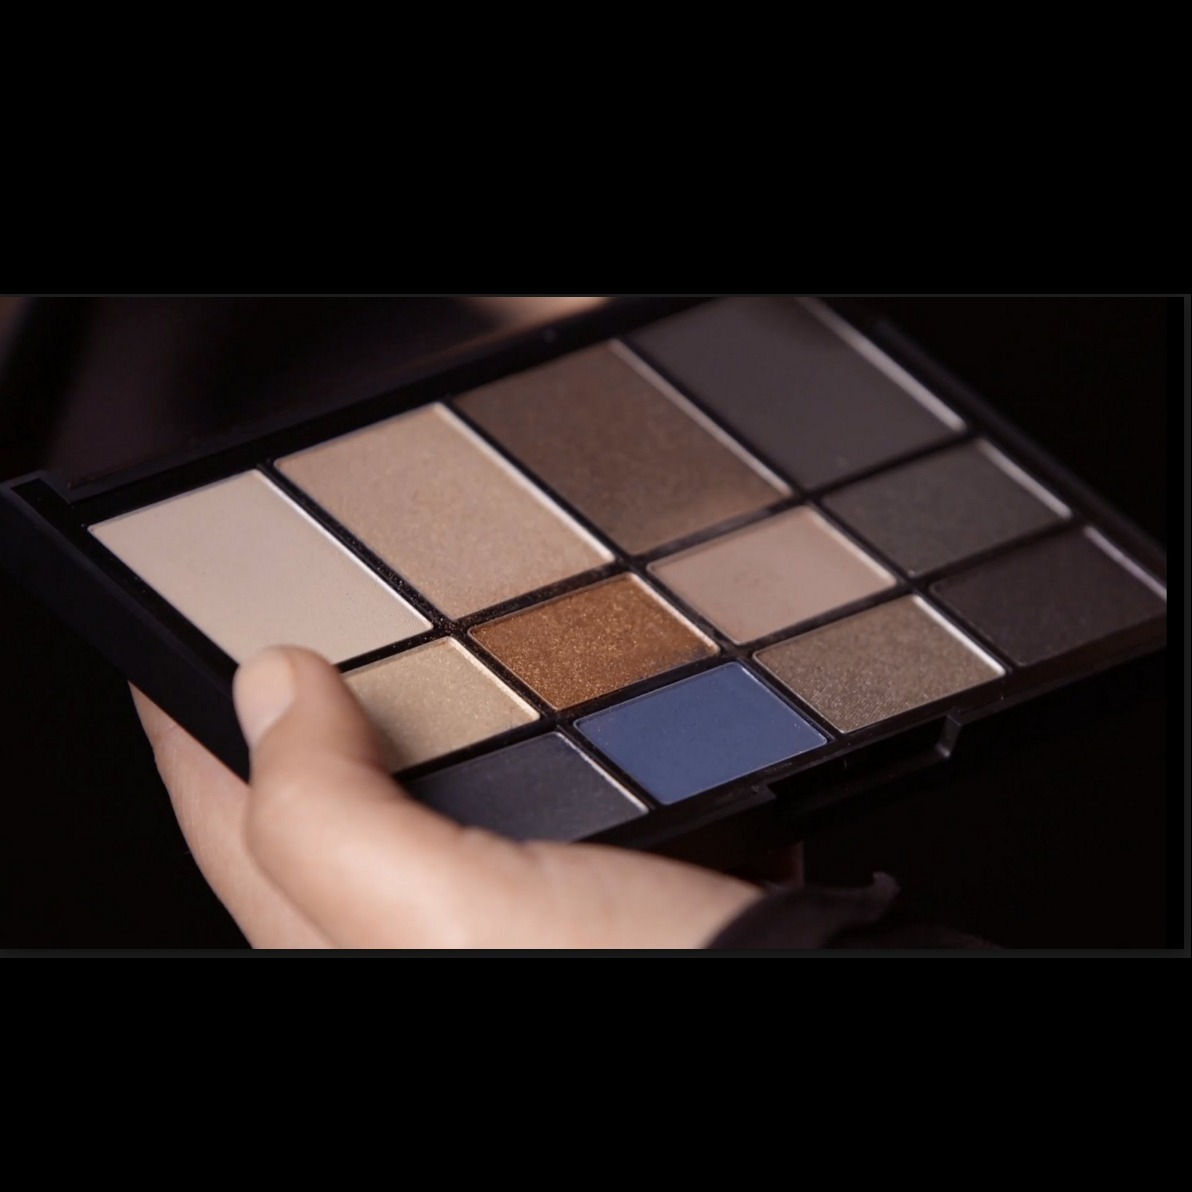 【NARS】NARSissist L'amour Toujours Eyeshadow Palette